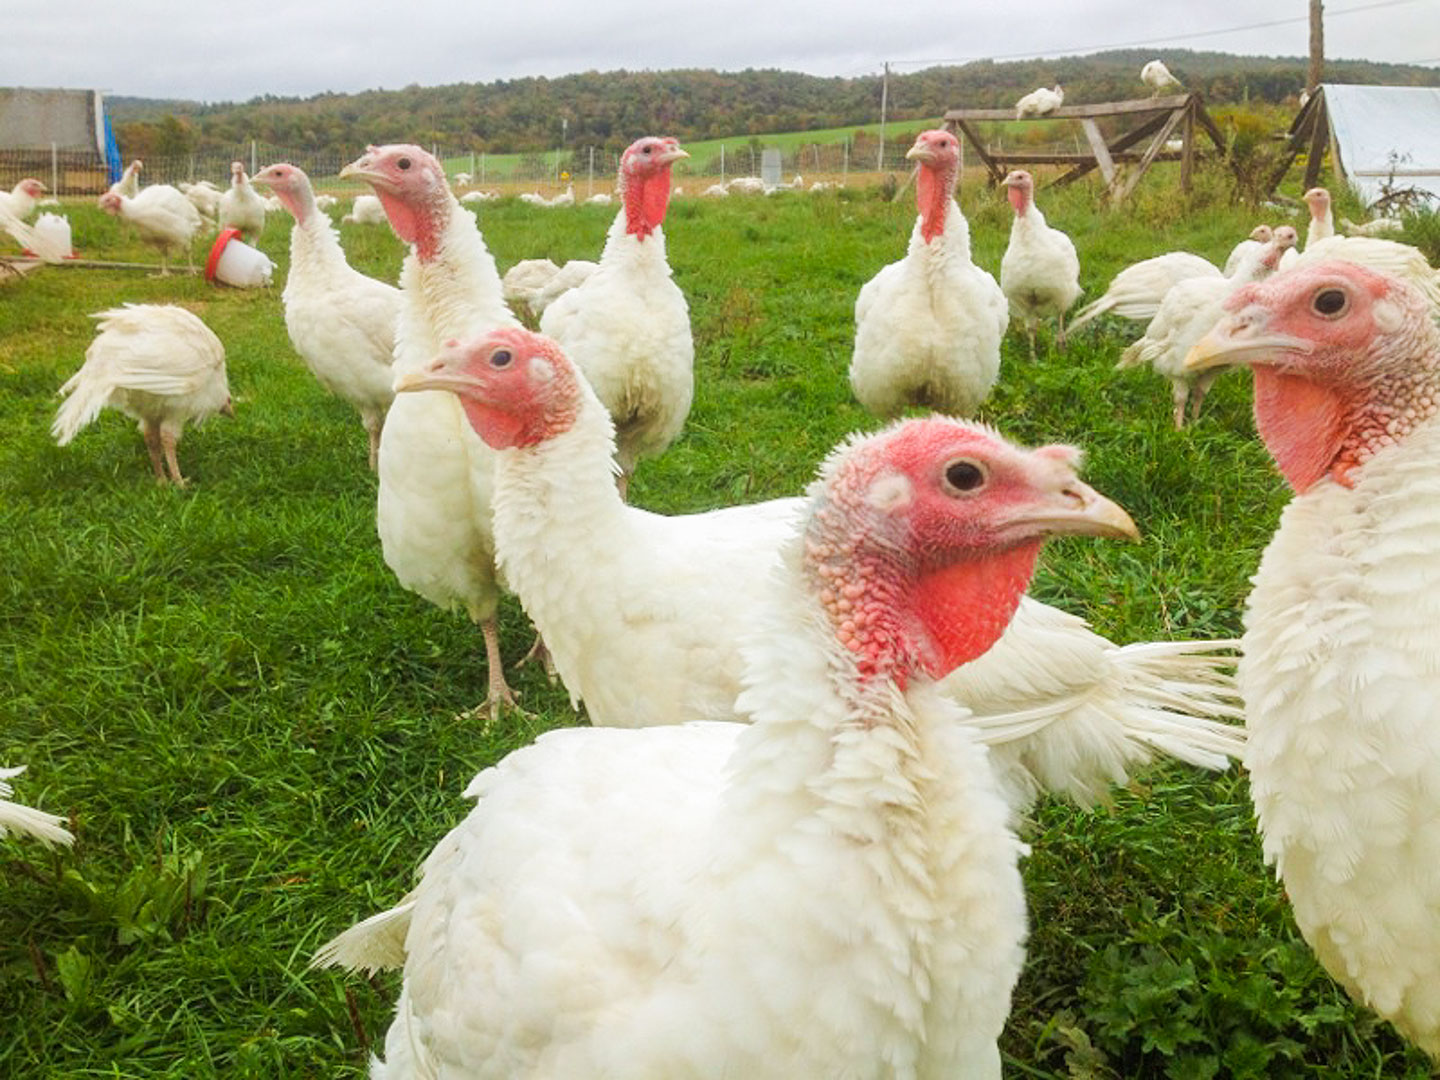 Free range organic turkeys from Halal Pastures. [Photo: Halal Pastures]